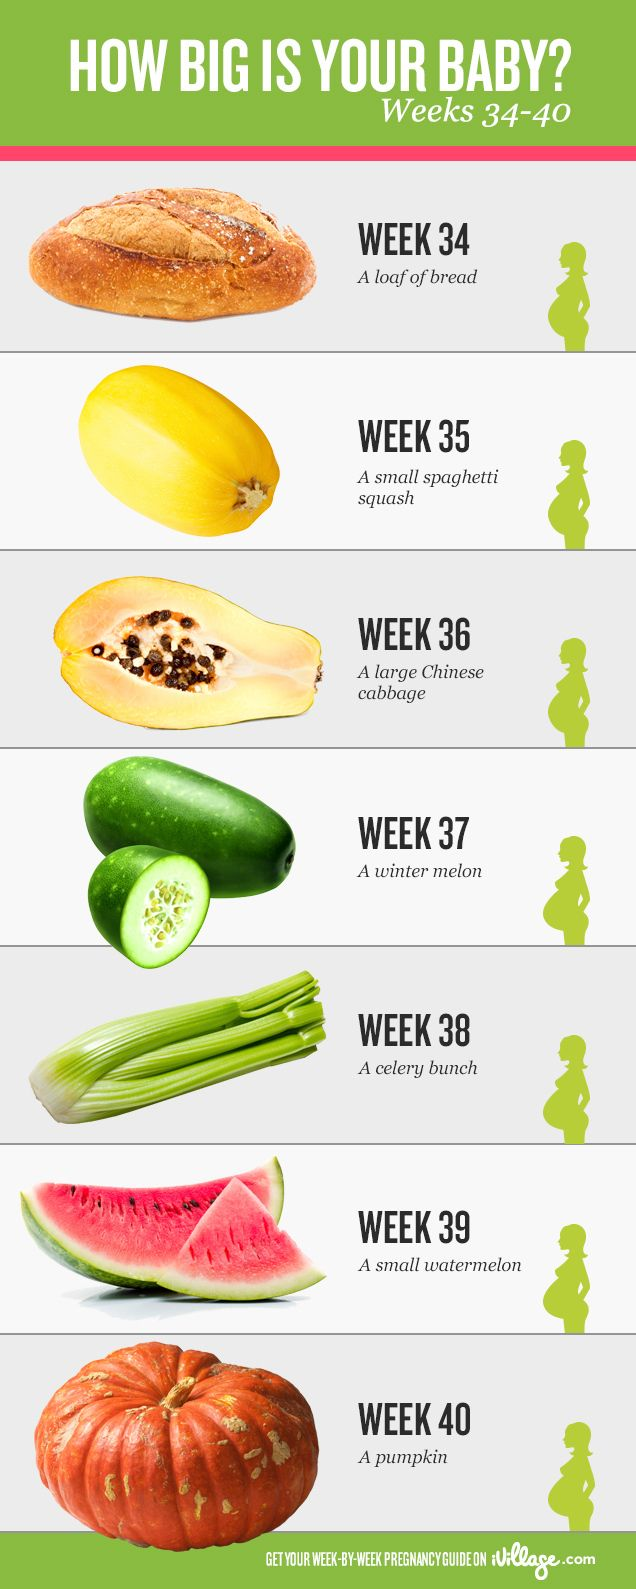 All the information and advice you need in your final weeks of pregnancy provided by our weekly calendar!  http://www.ivillage.com/my-pregnancy-week-by-week